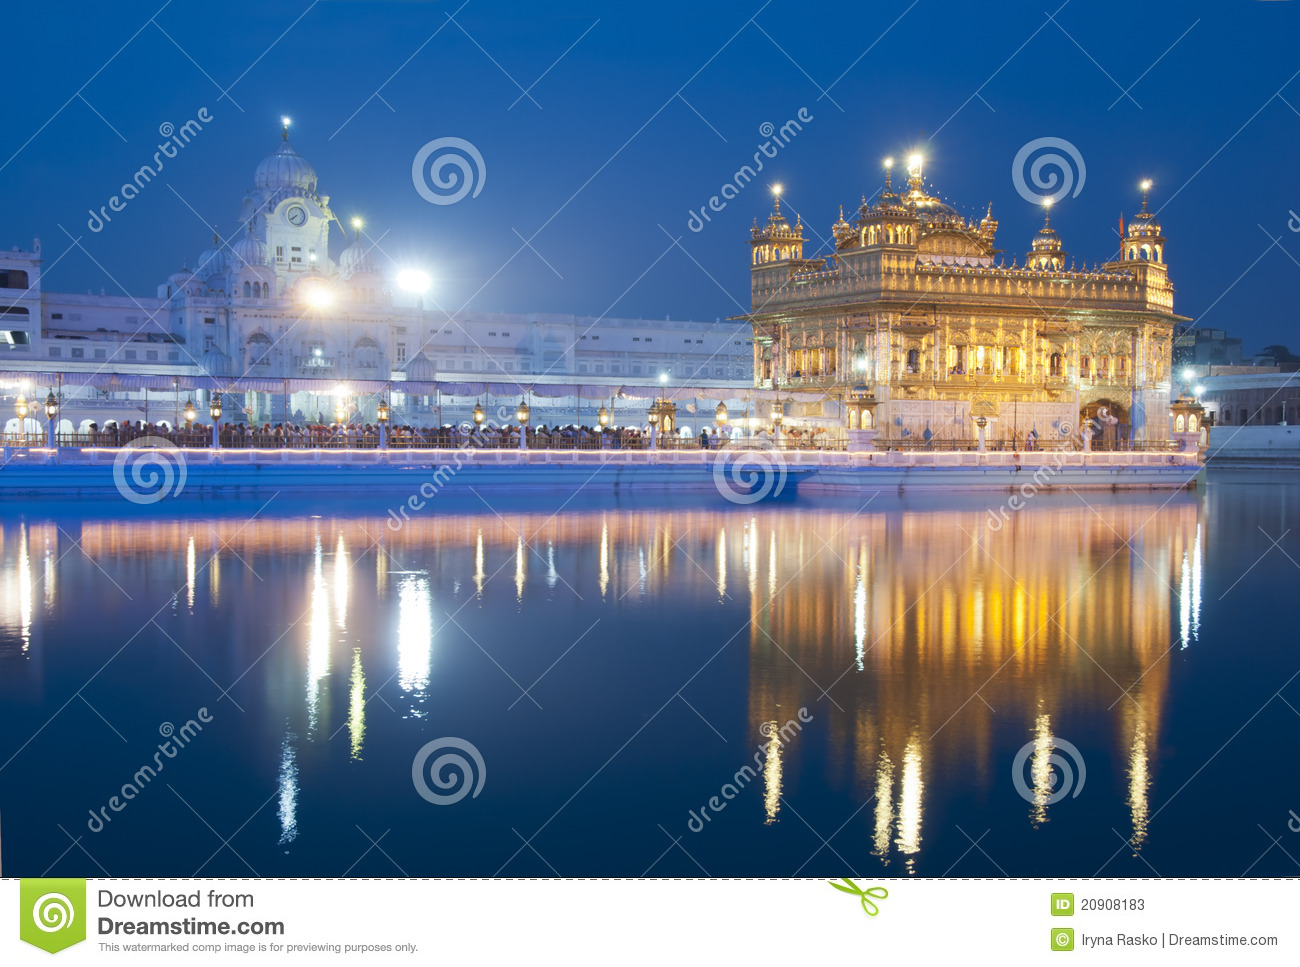 Golden Temple of Amritsar, India